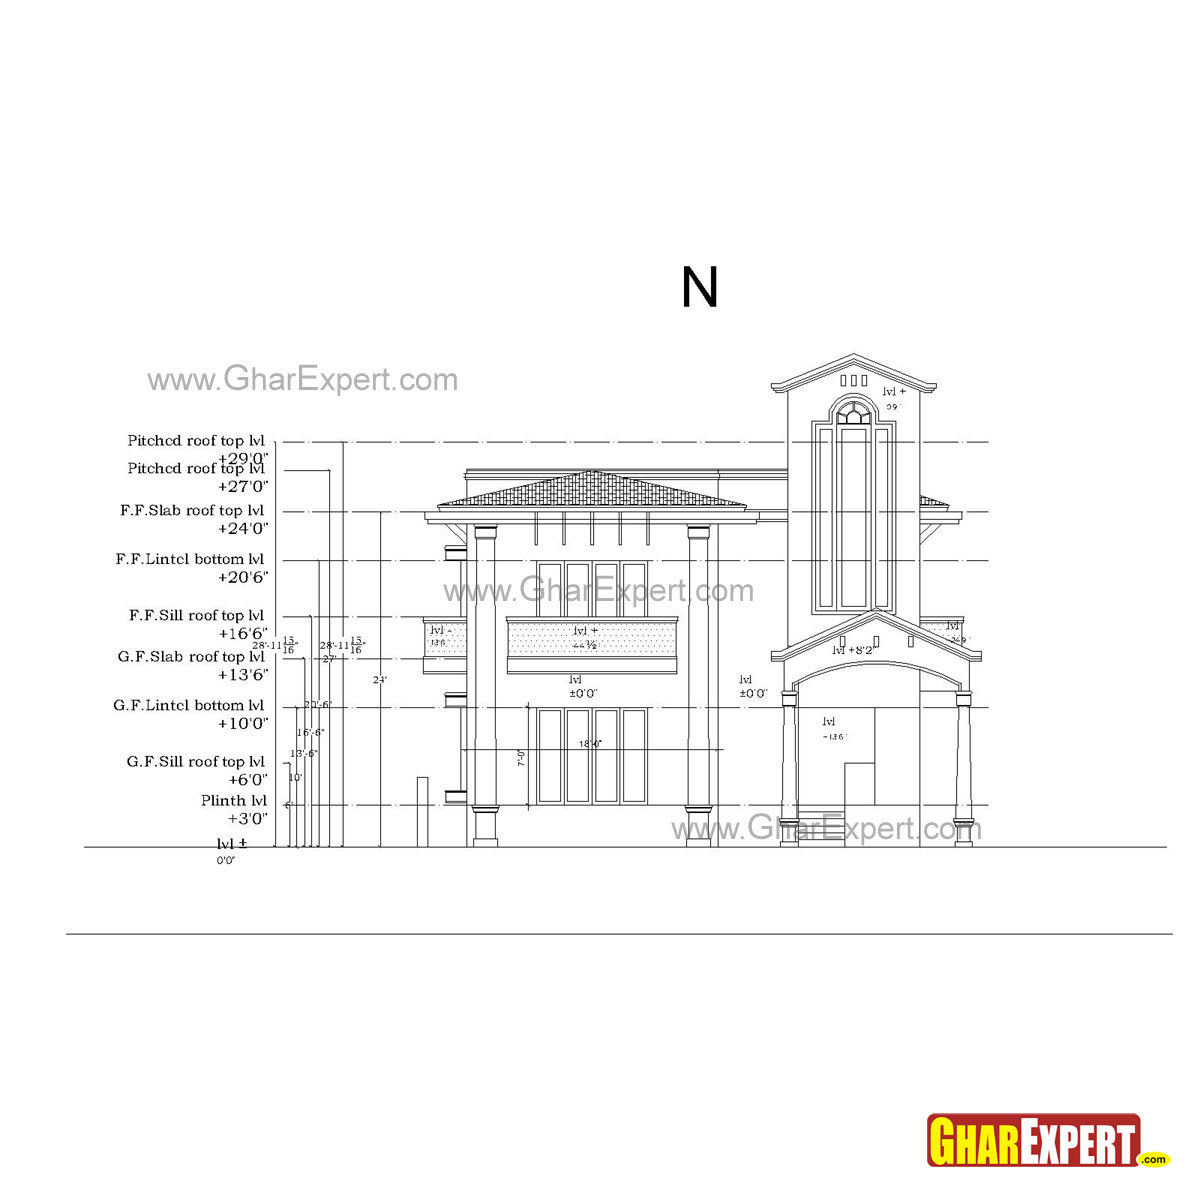 Sample Front Elevation U : Sample architectural structure plumbing and electrical